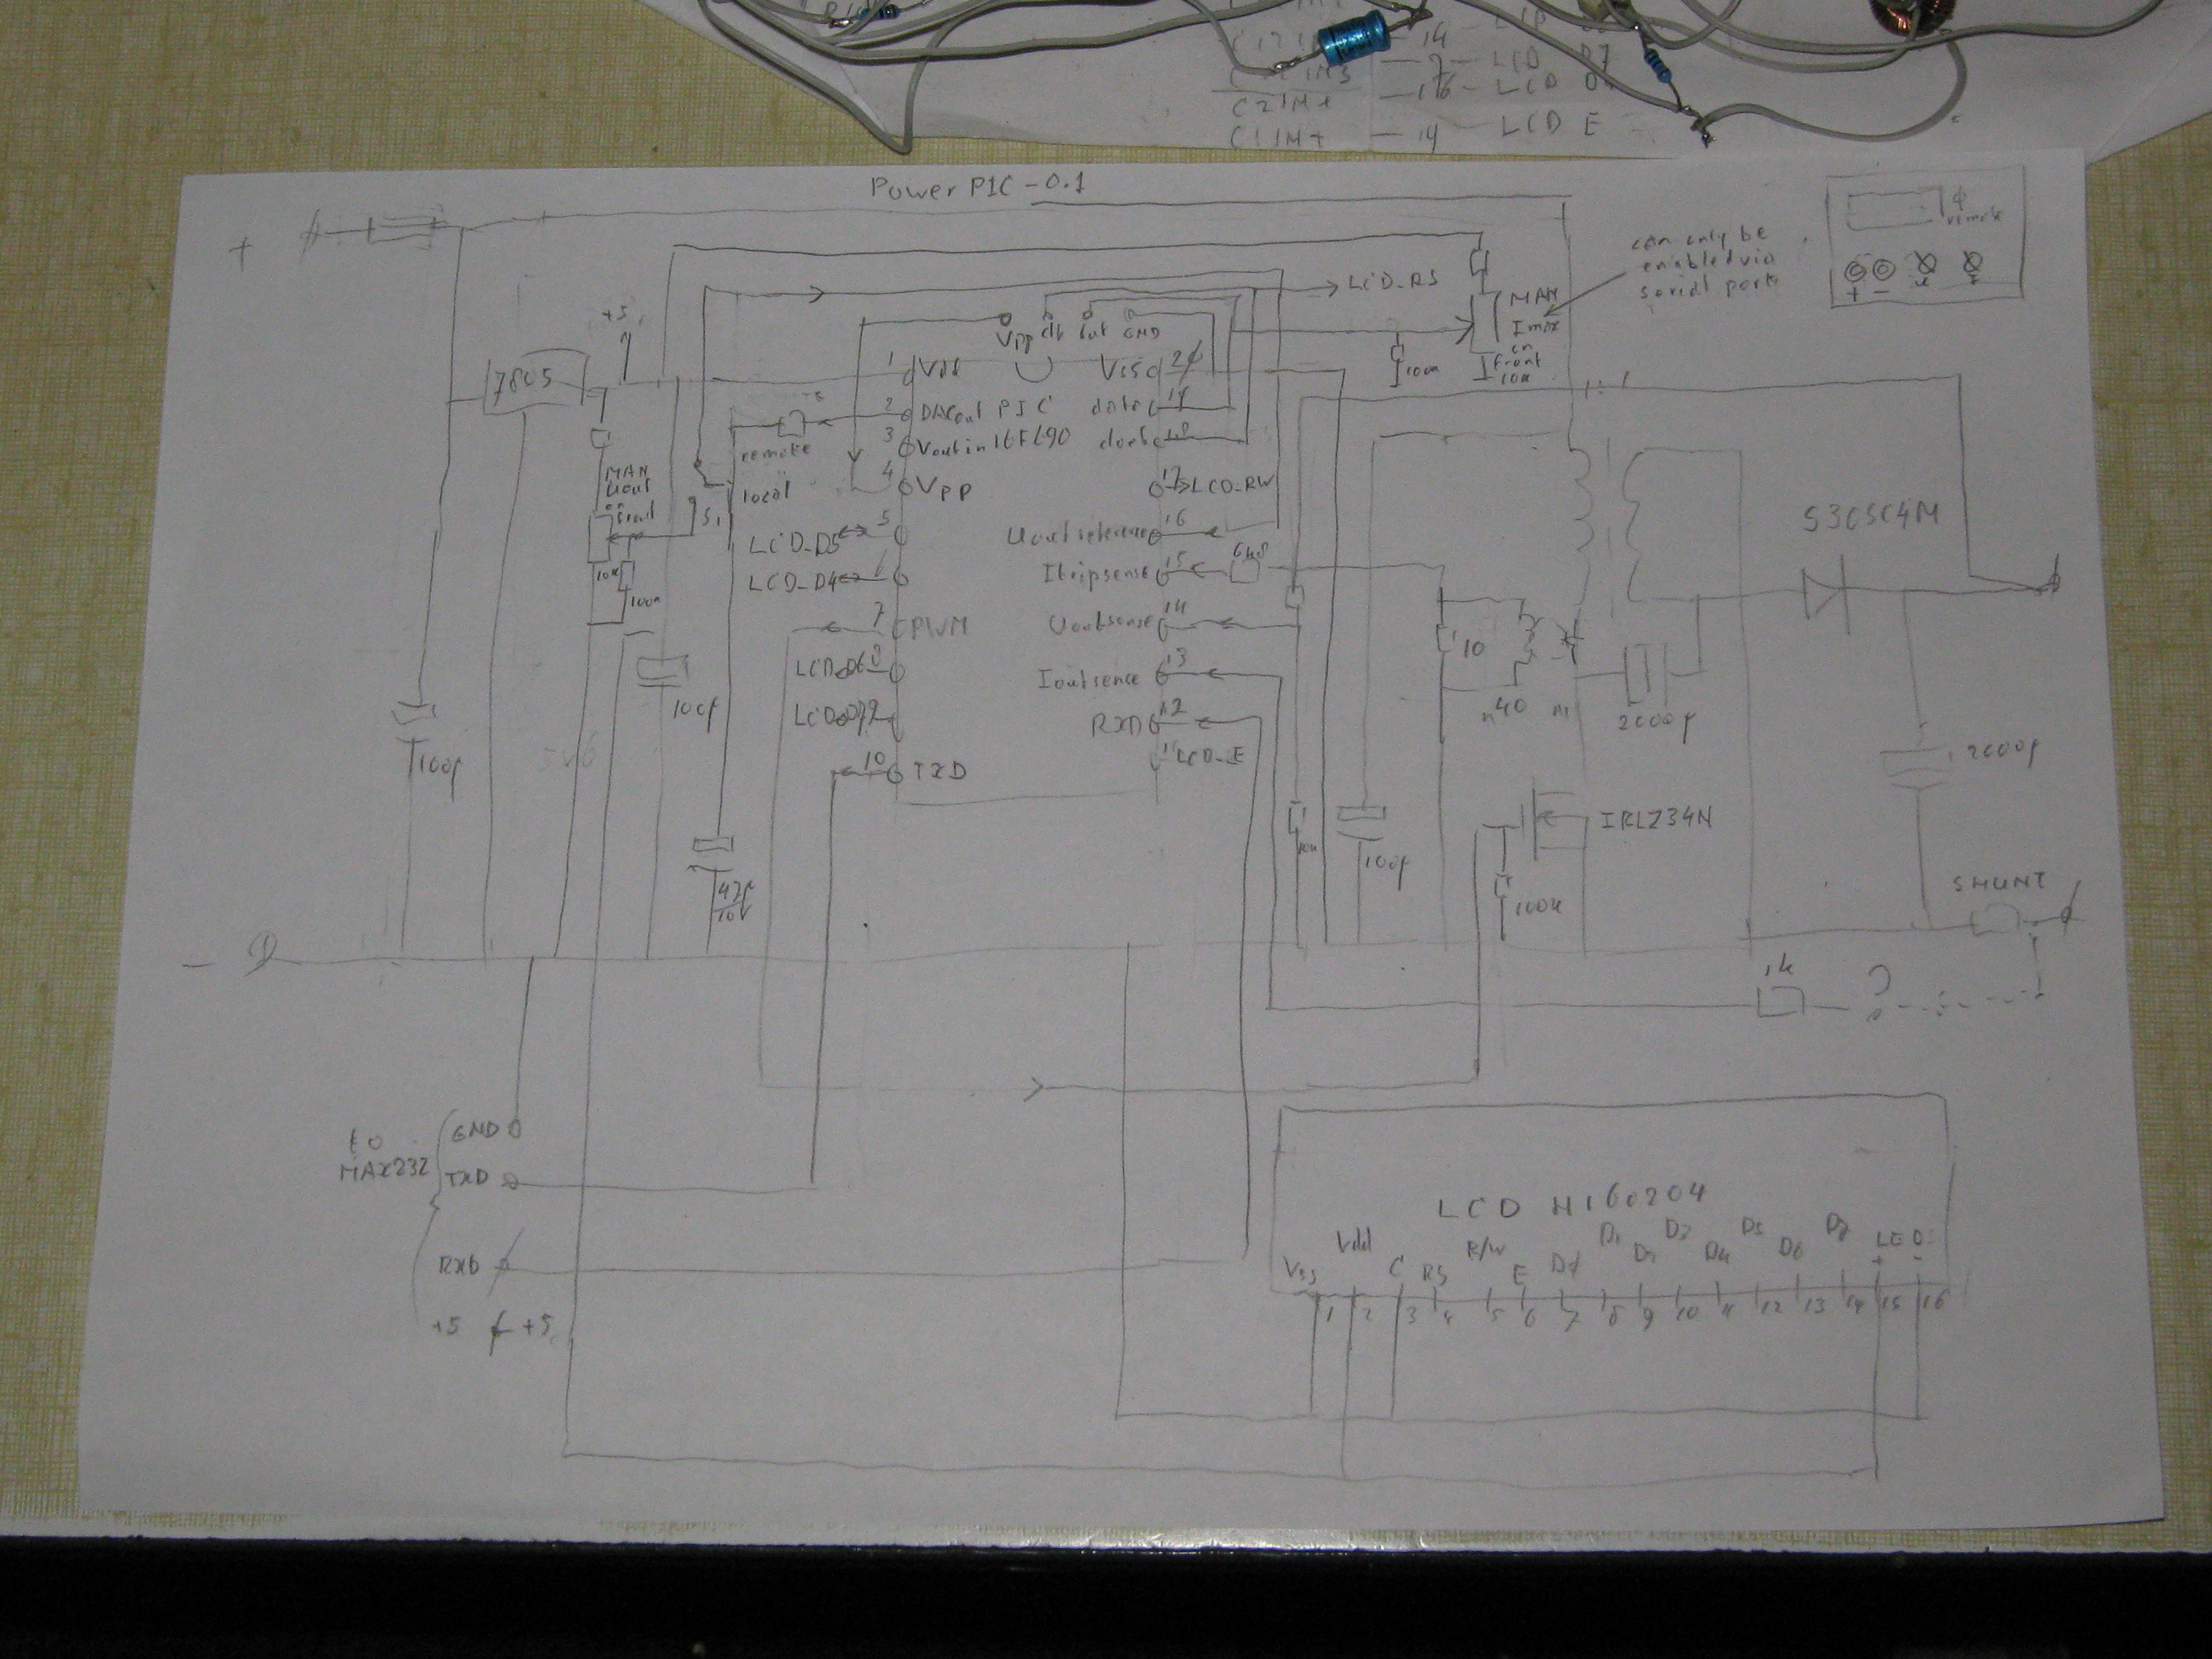 Panteltjes Power Pic Page Discrete Pwm Generator Circuit Here The Drives A 2 X 16 Line Lcd Character Display Showing Output Voltage And Current As Well Watts Time Input